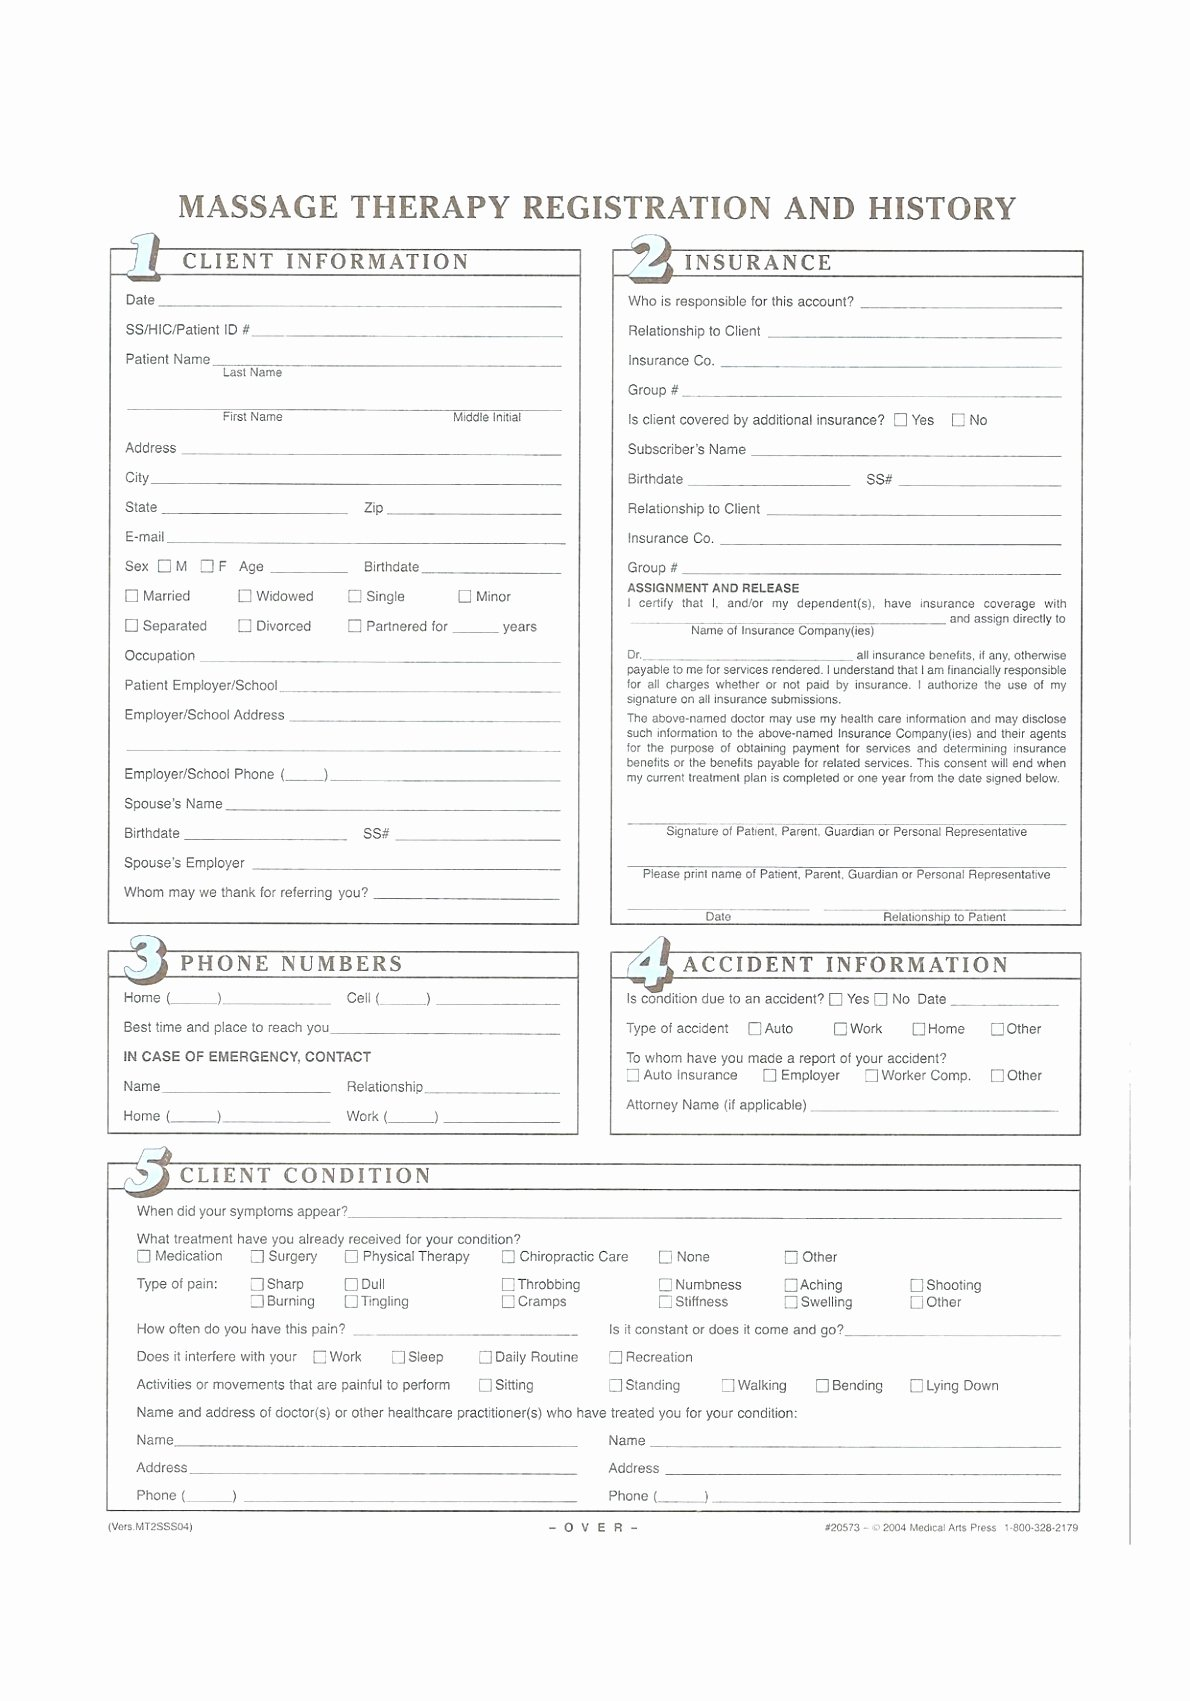 12 Client Intake form Massage therapy Template Yuprt